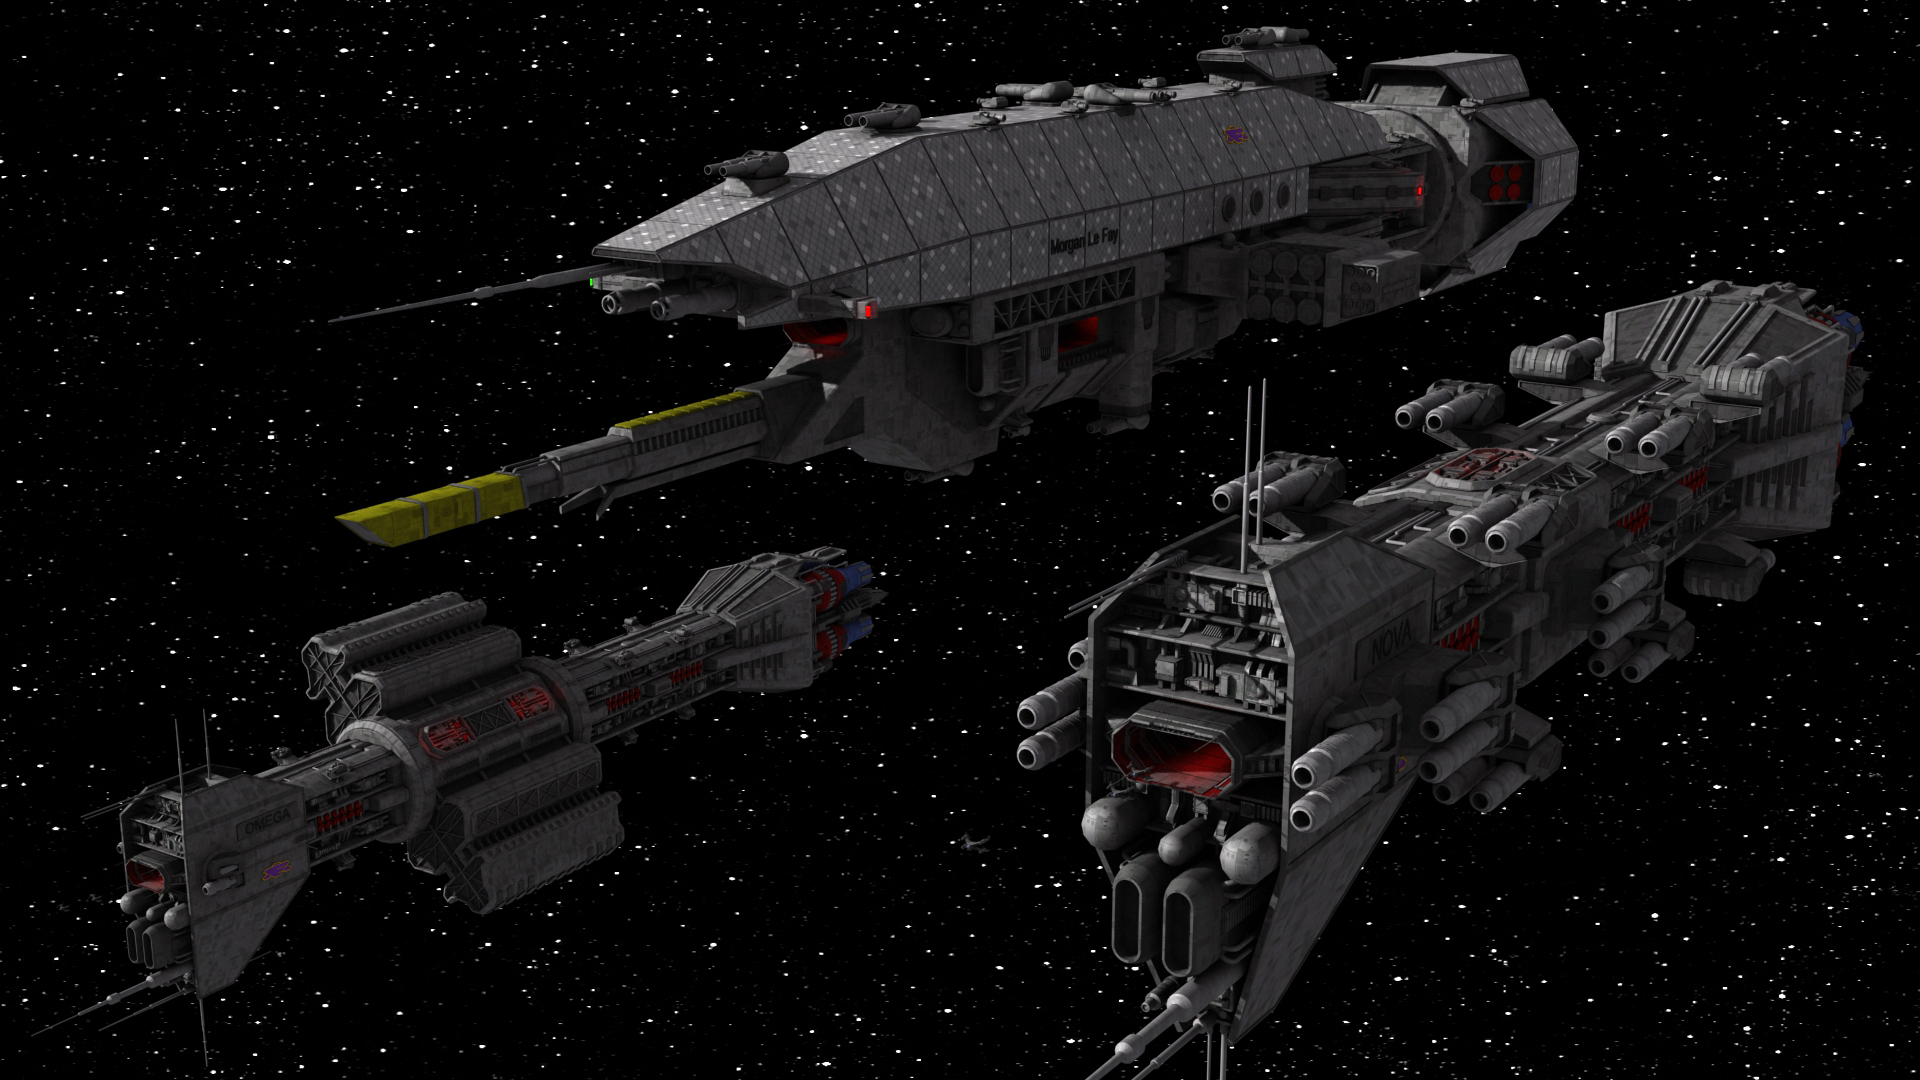 What Space Battleship Design You Consider The Most